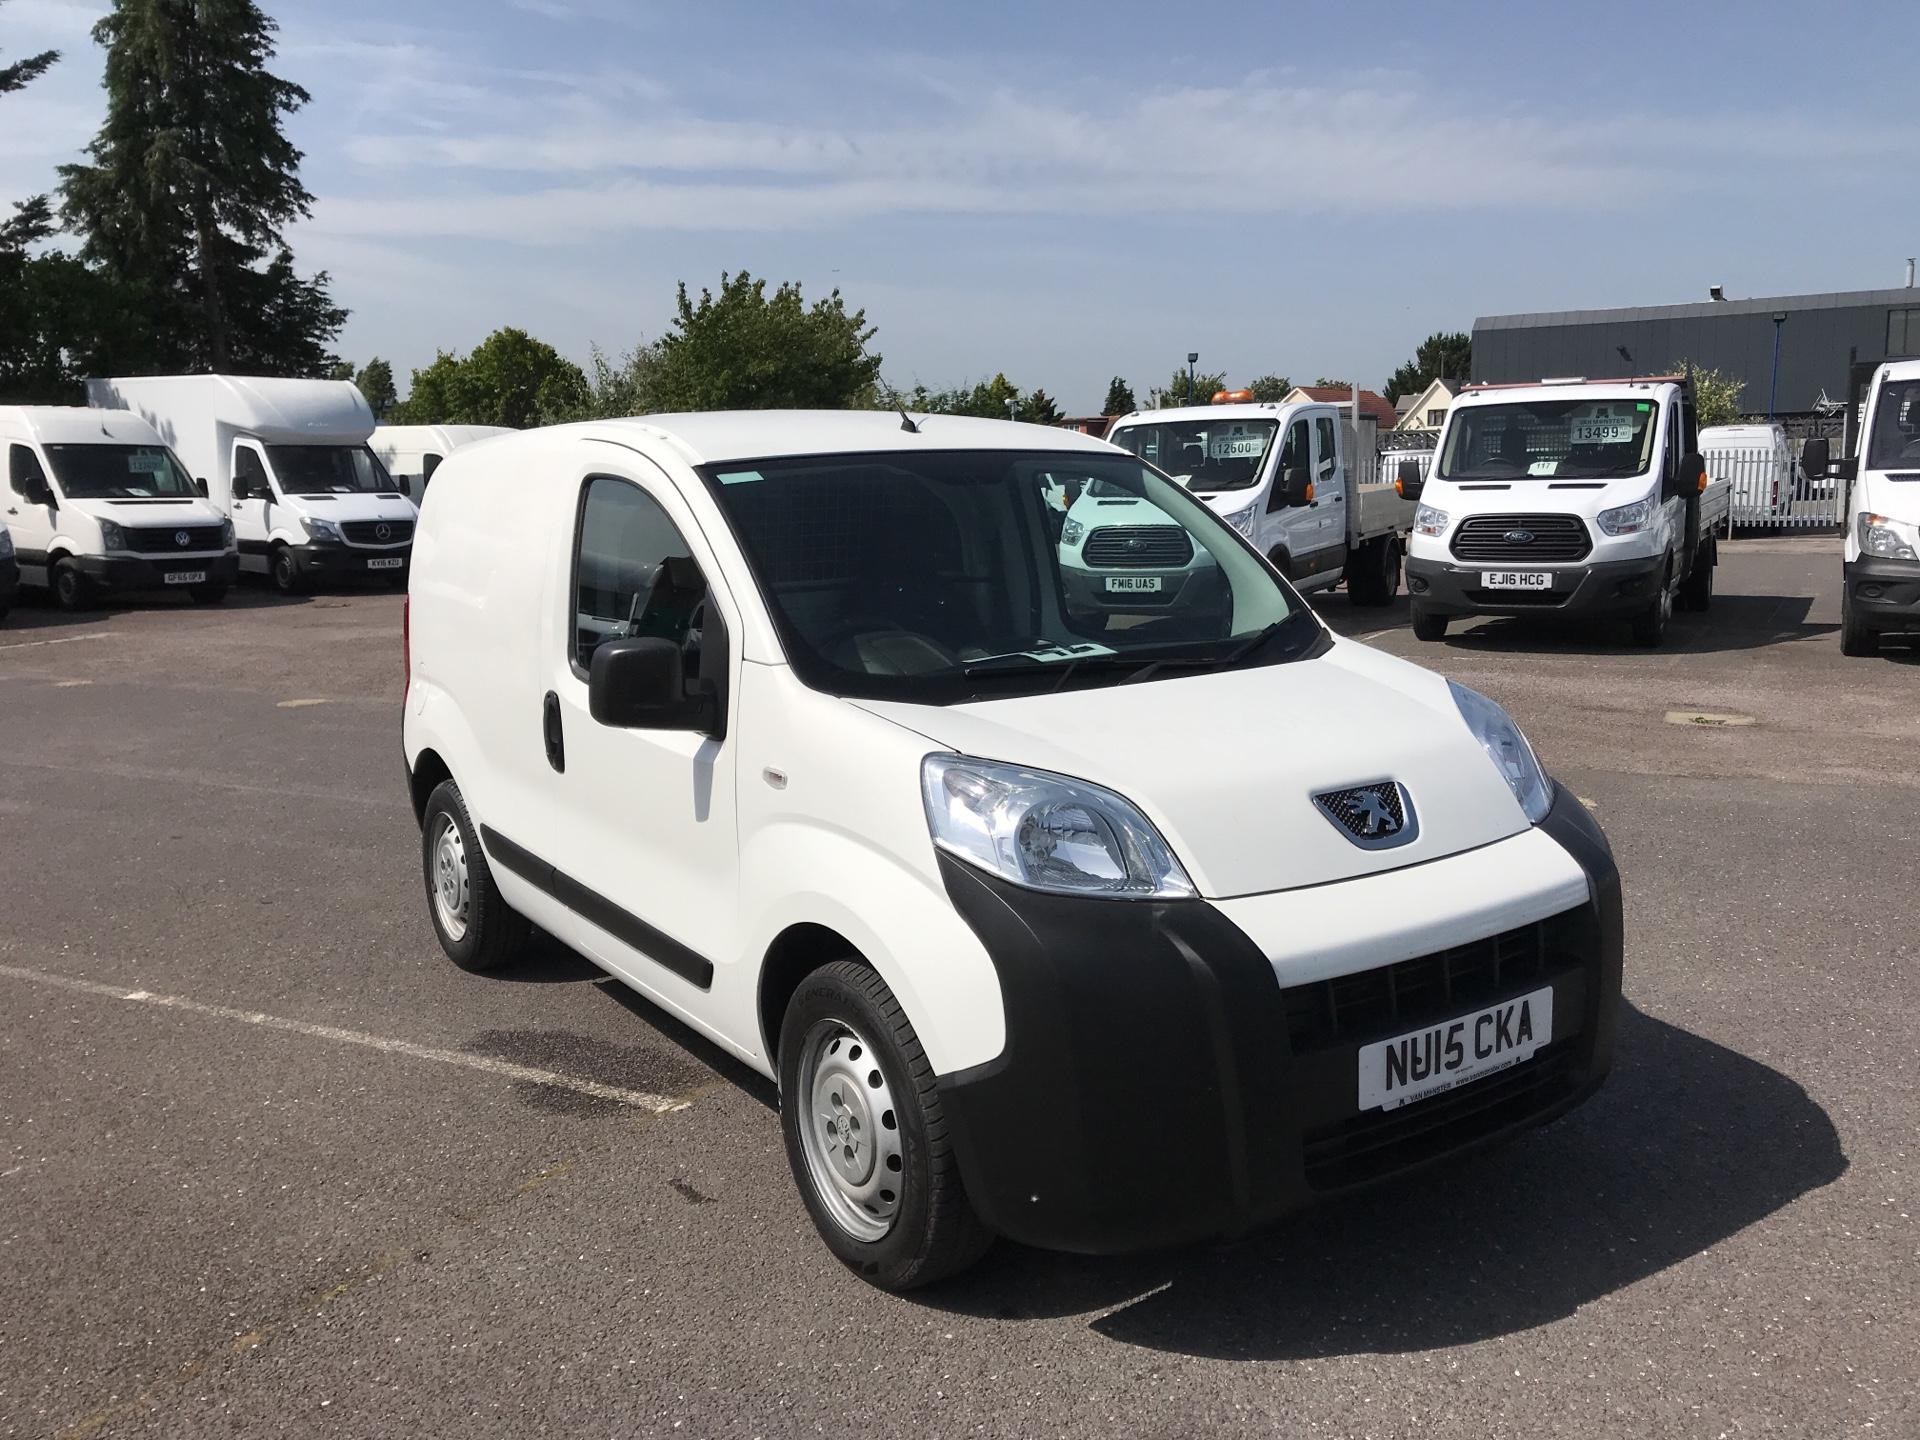 2015 Peugeot Bipper 1.3 HDI 75 S PLUS PACK NON S/S EURO 5 CONDITION REFELECTED IN PRICE (NU15CKA)